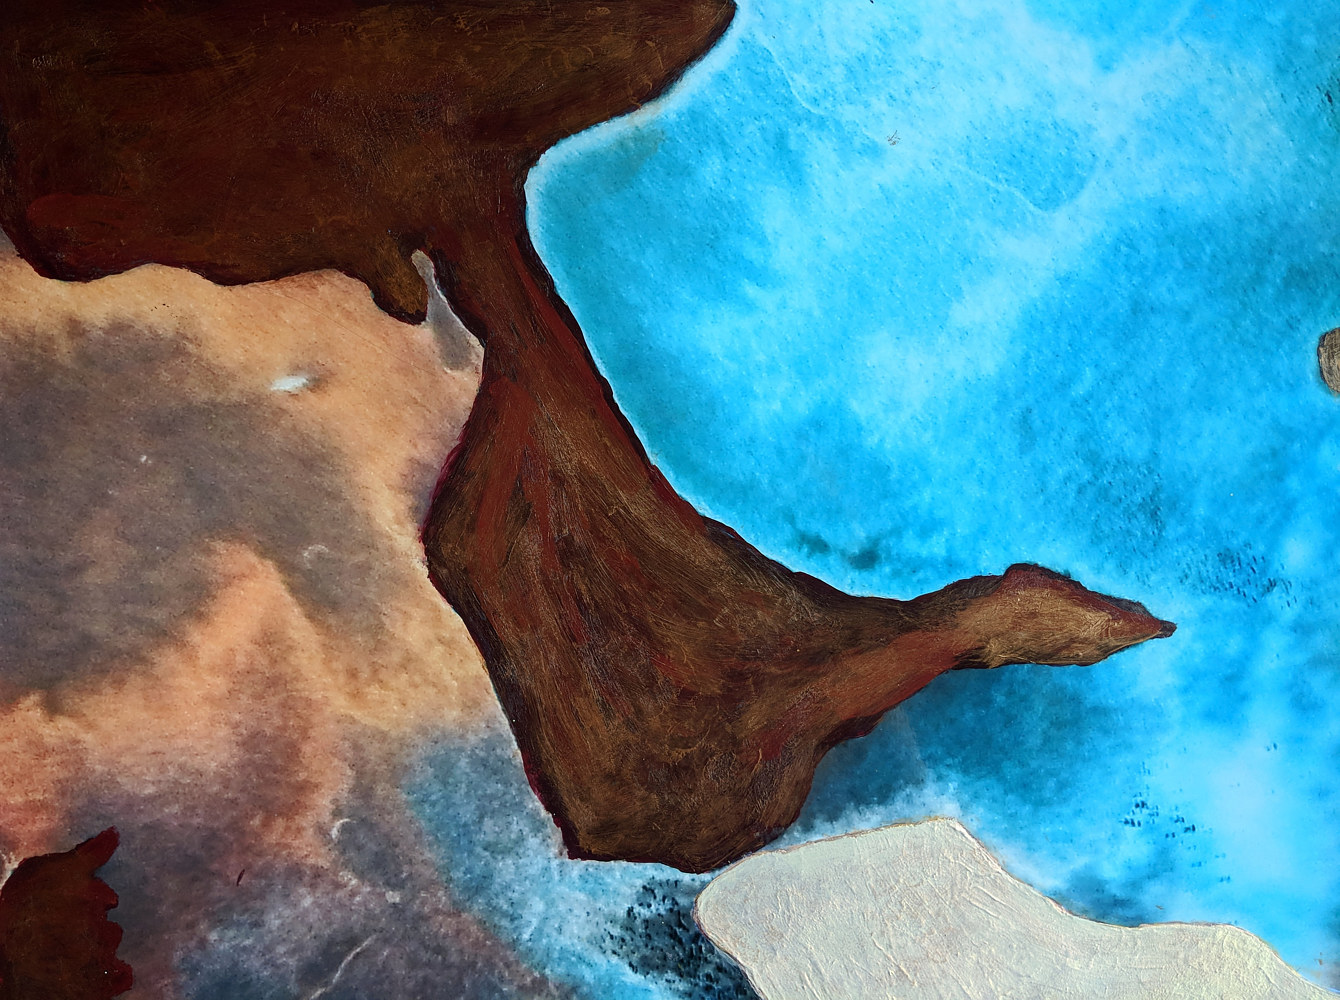 Acrylic painting Earth Science by Pamela Pitt